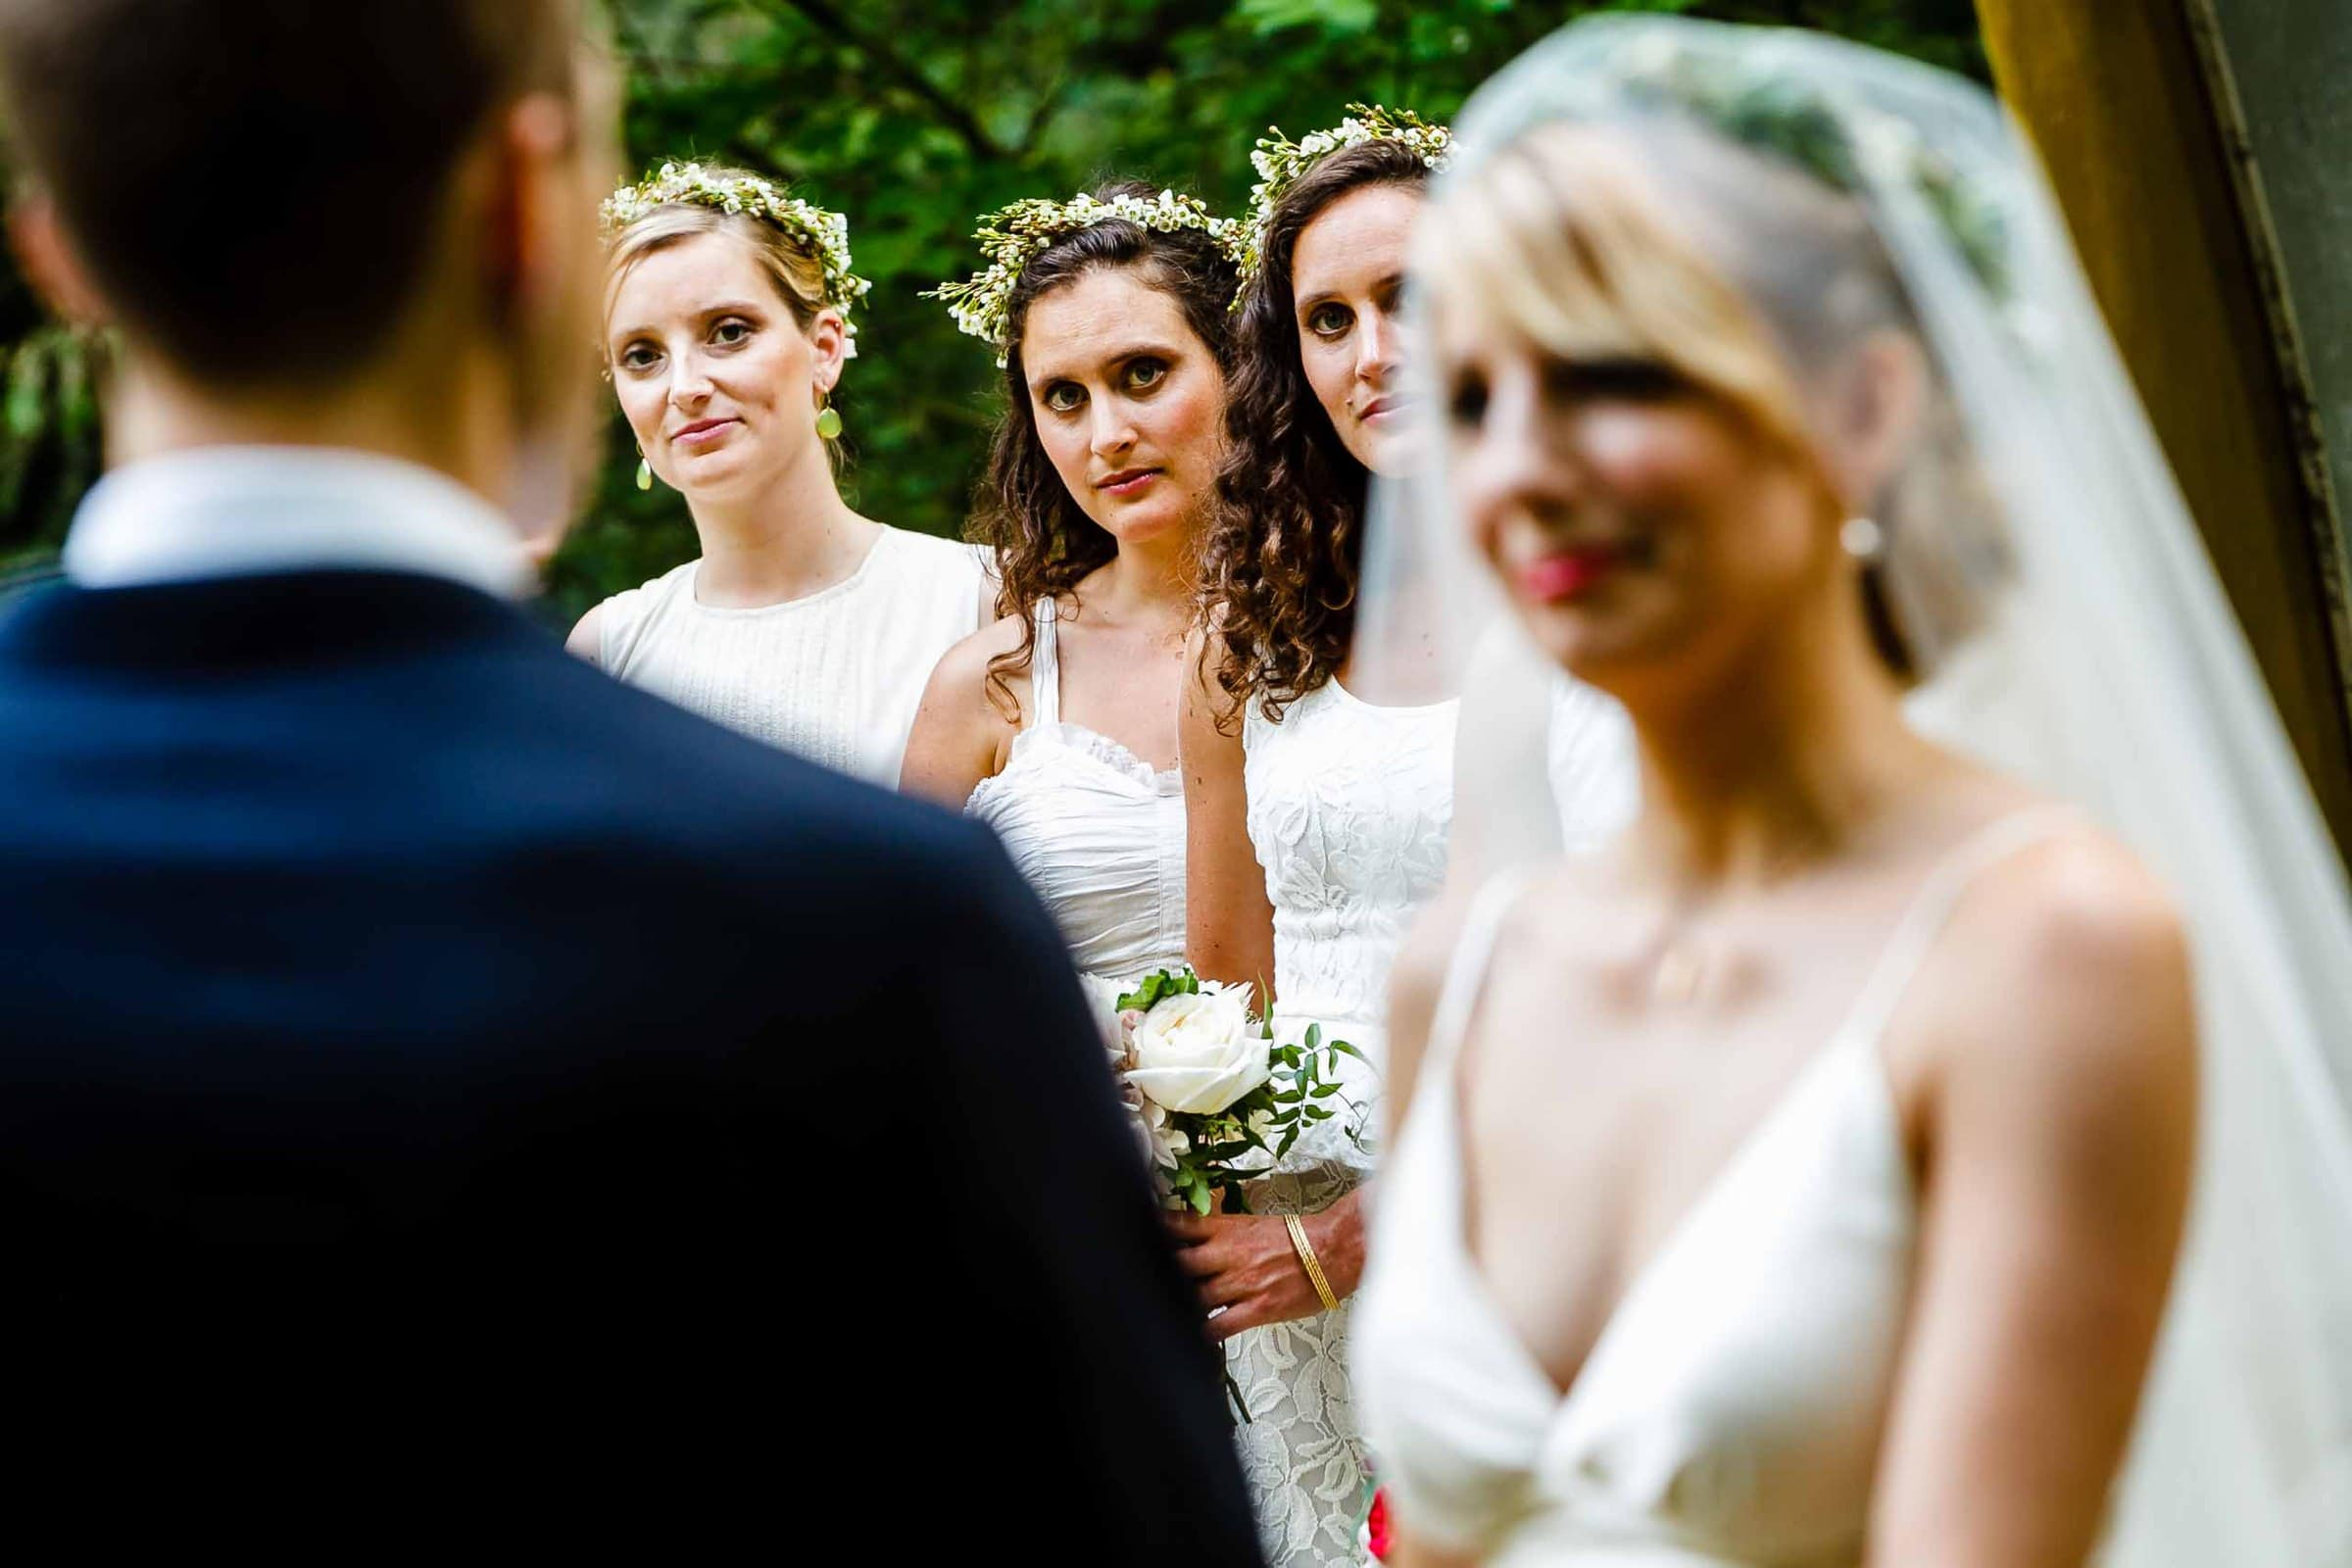 A photo with storytelling depth of gorgeous bridesmaids and a bride exchanging vows during a camp angleos wedding ceremony in Oregon